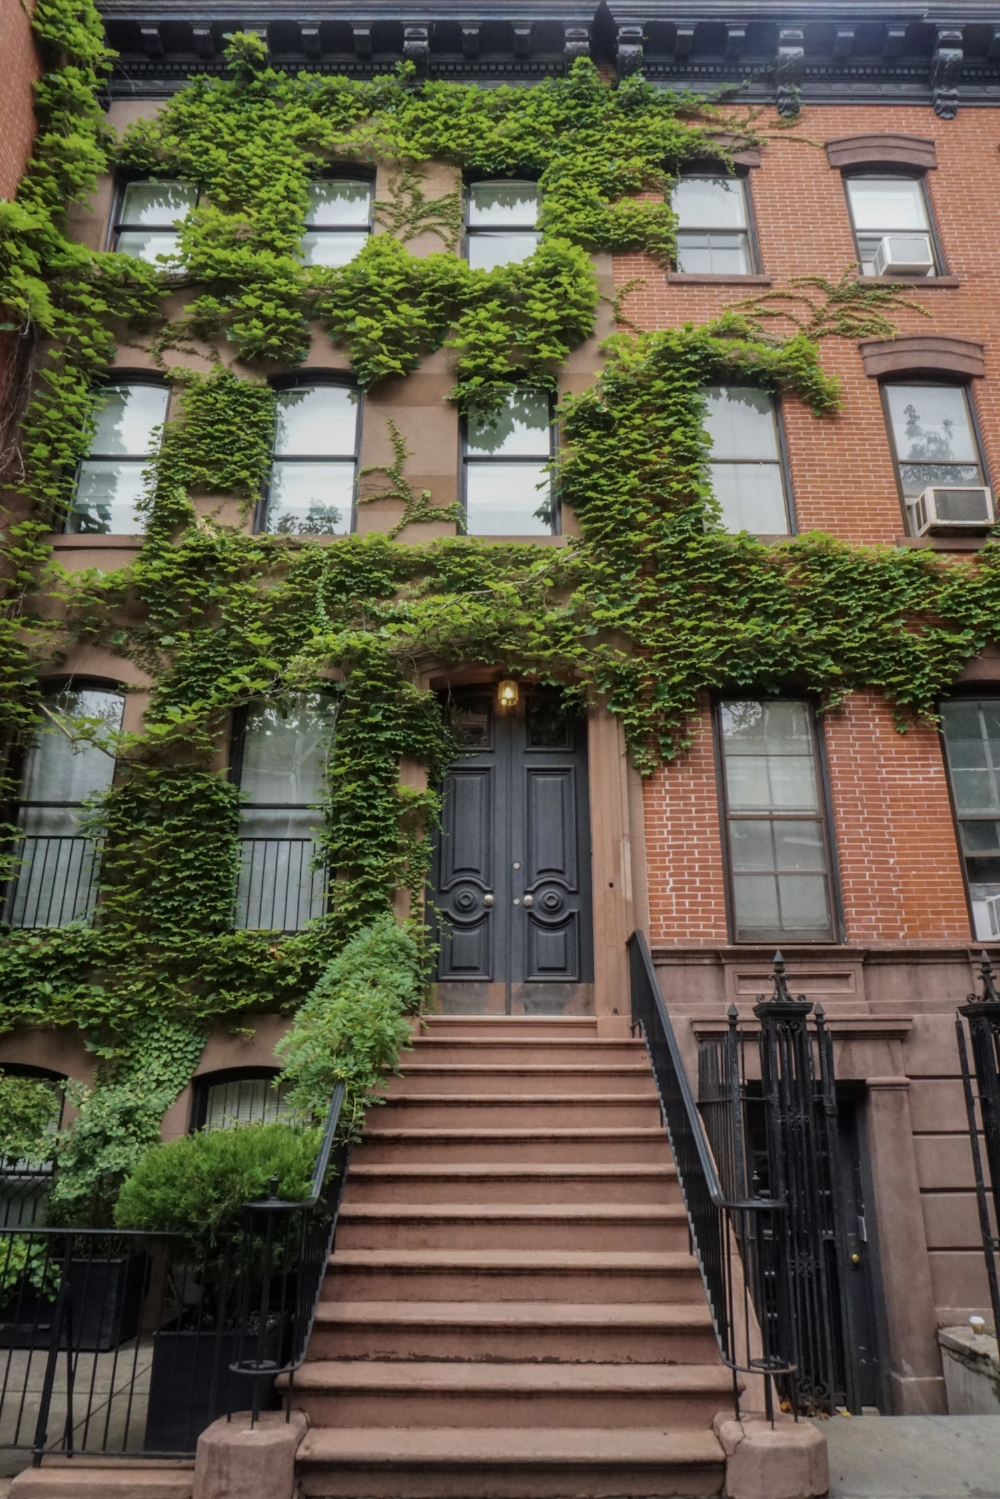 curio.trips.usa.nyc.greenwich.village.ivy.house.jpg